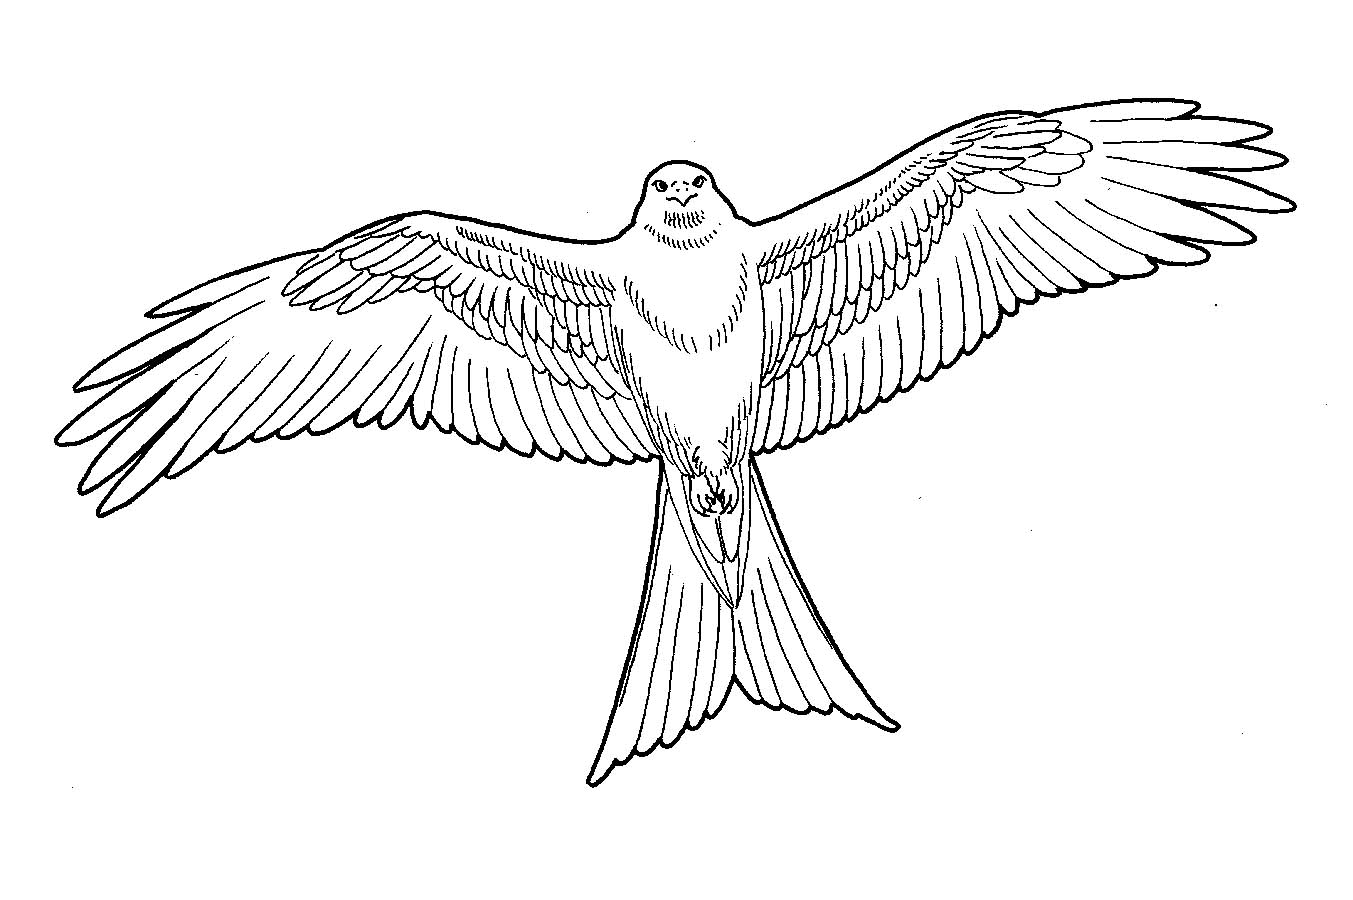 Mobile/drawing Of Red Kite Birds Sketch Coloring Page